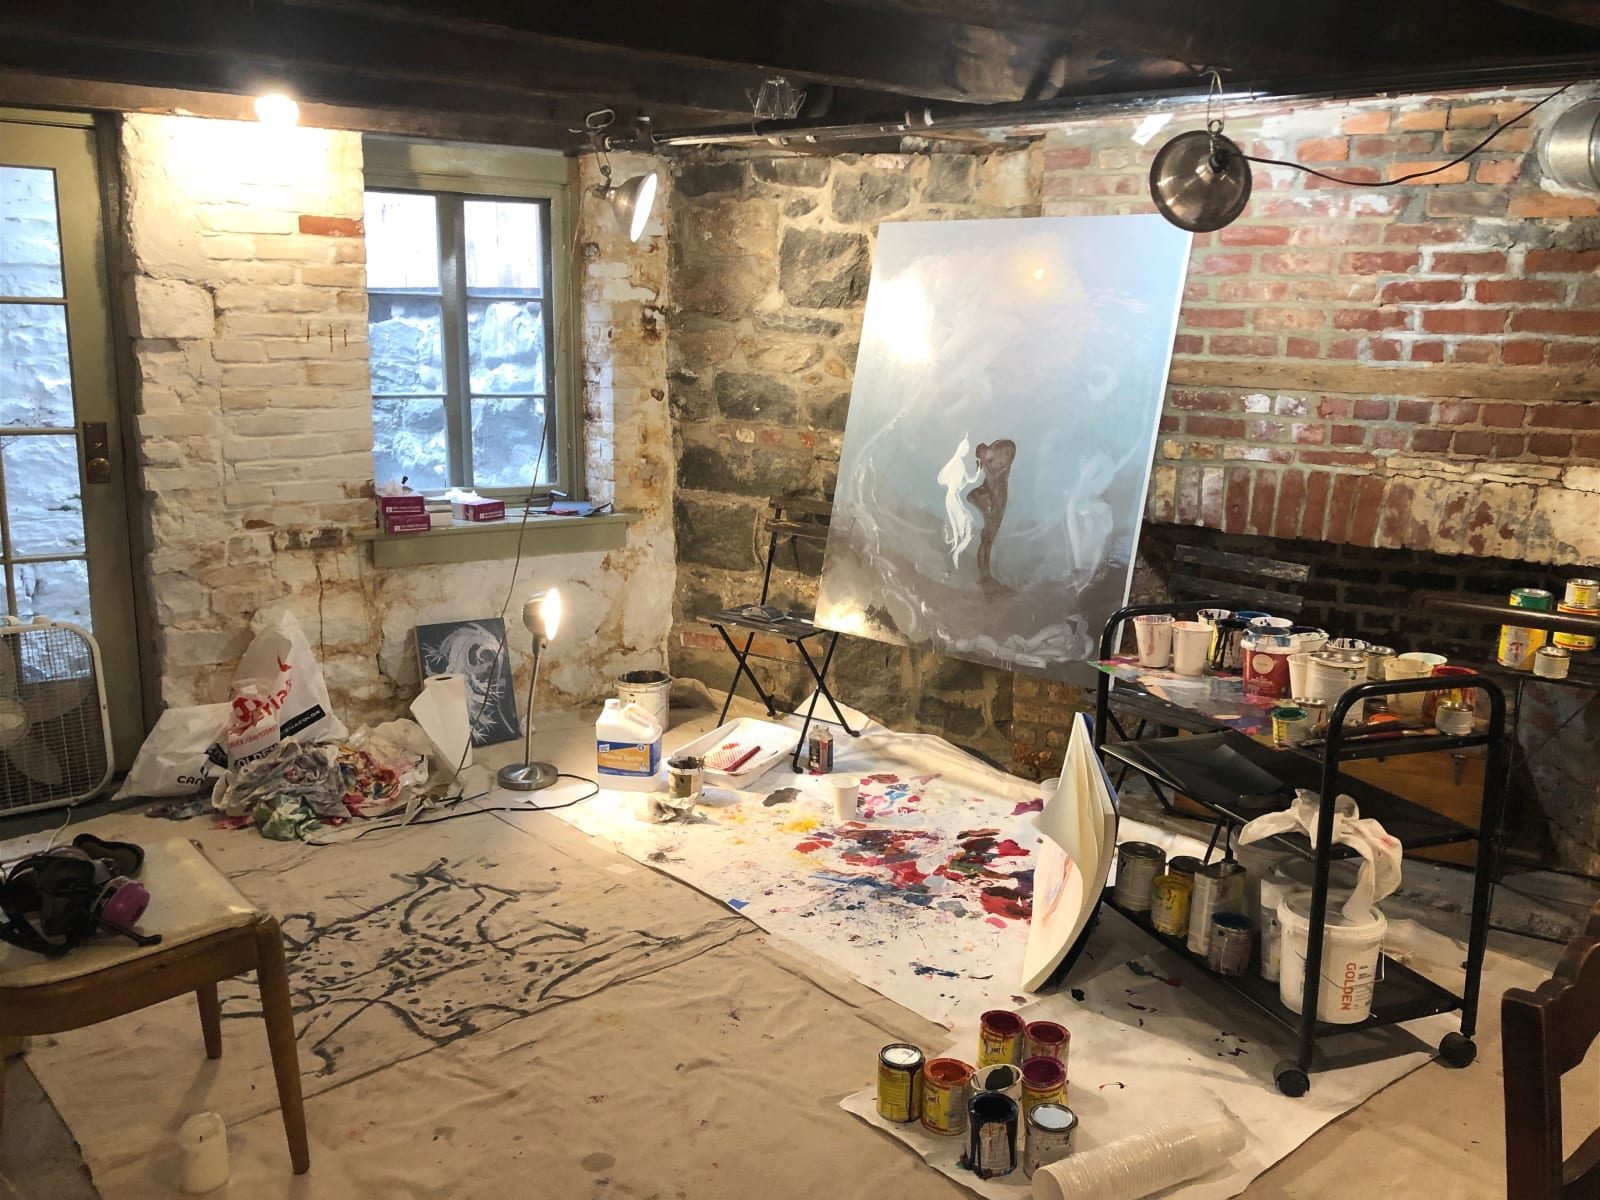 Inka Essenhigh's current workspace in the basement of her New York apartment